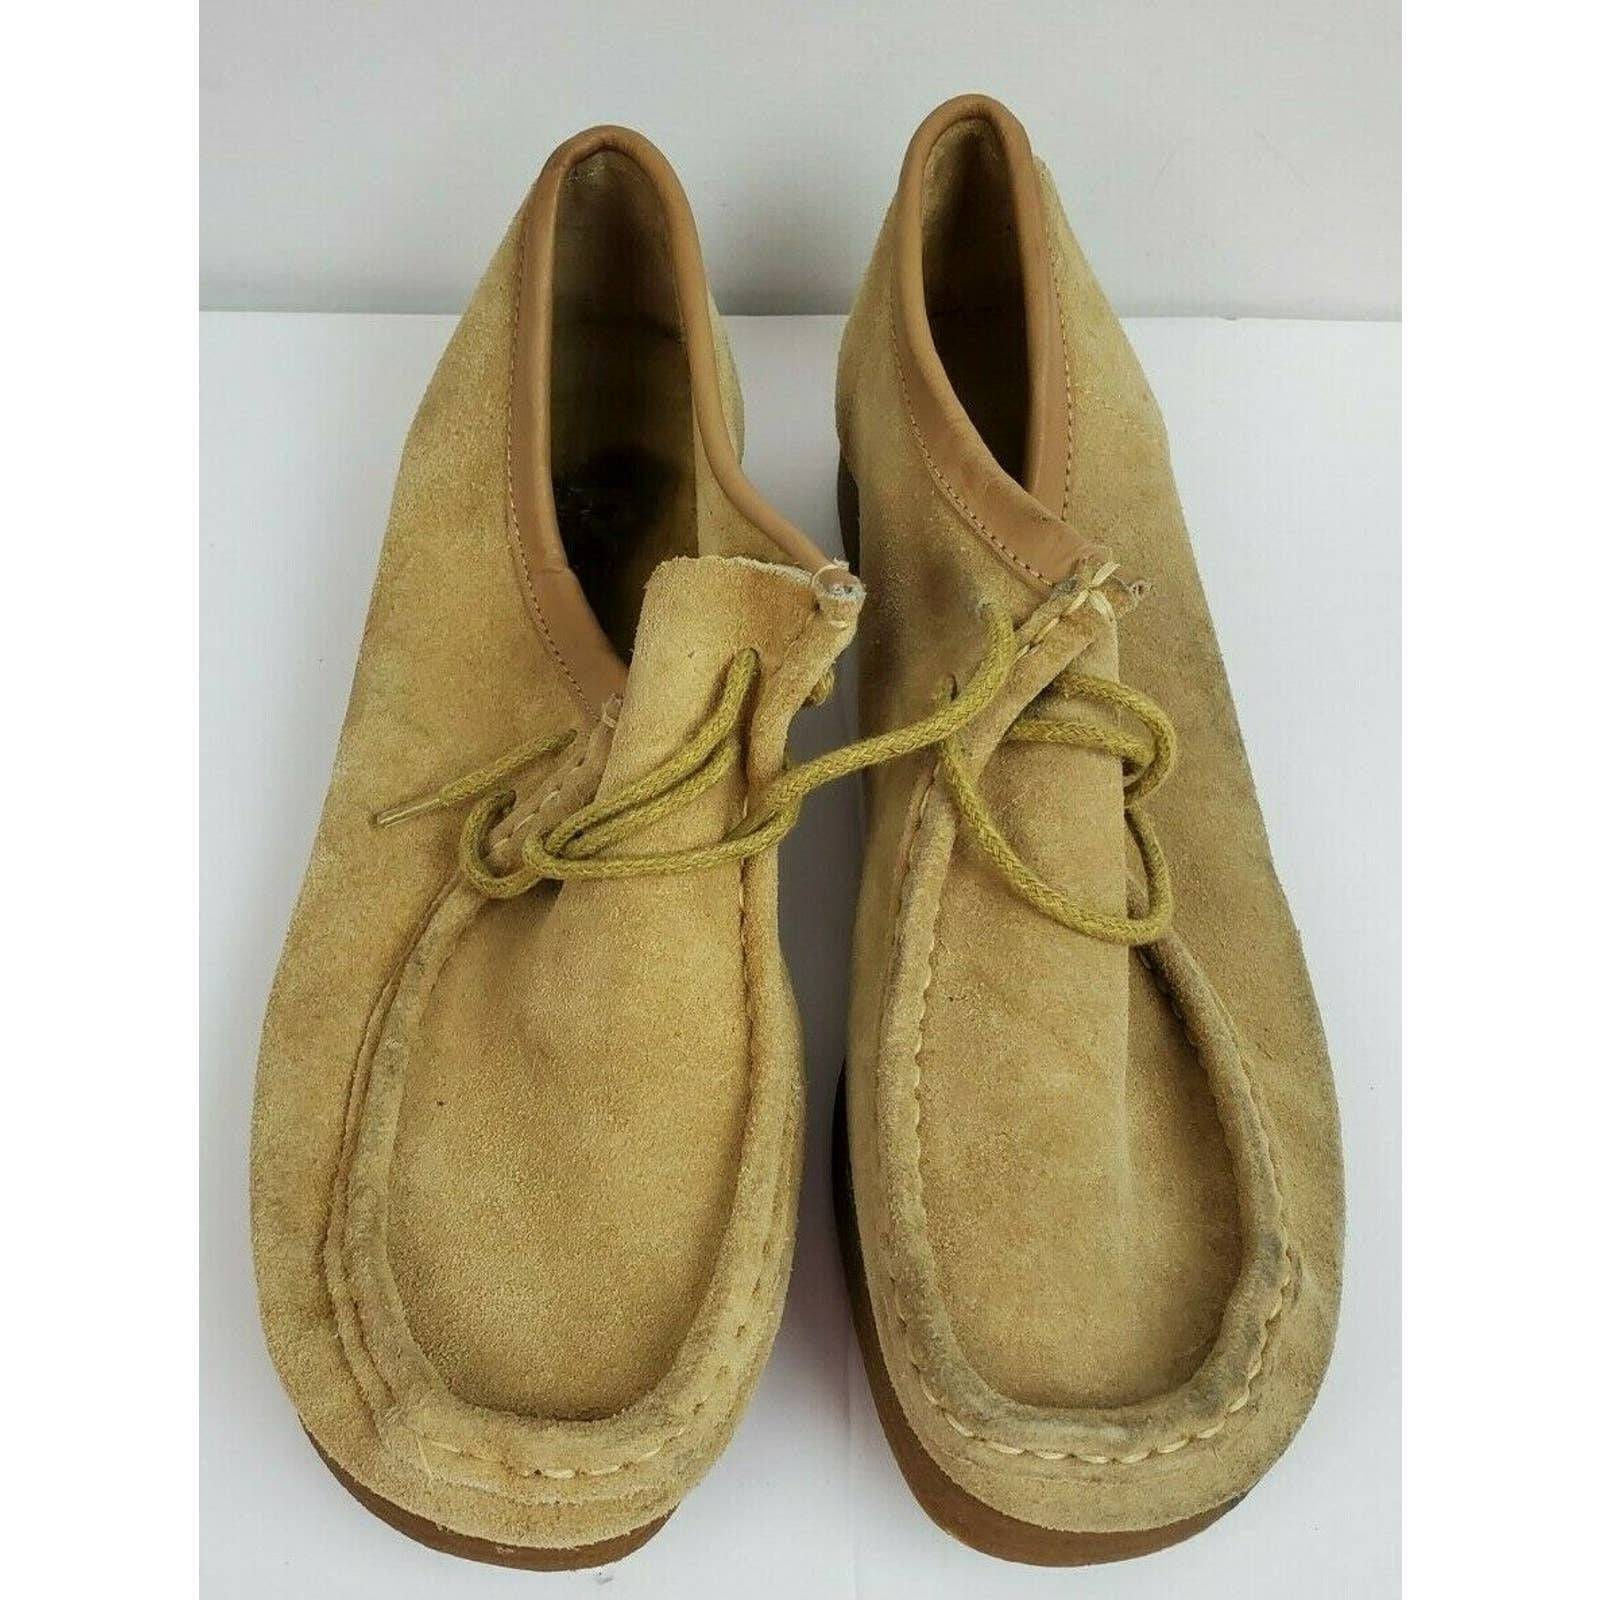 CosmoPedio Mens Shoes Size 14.5